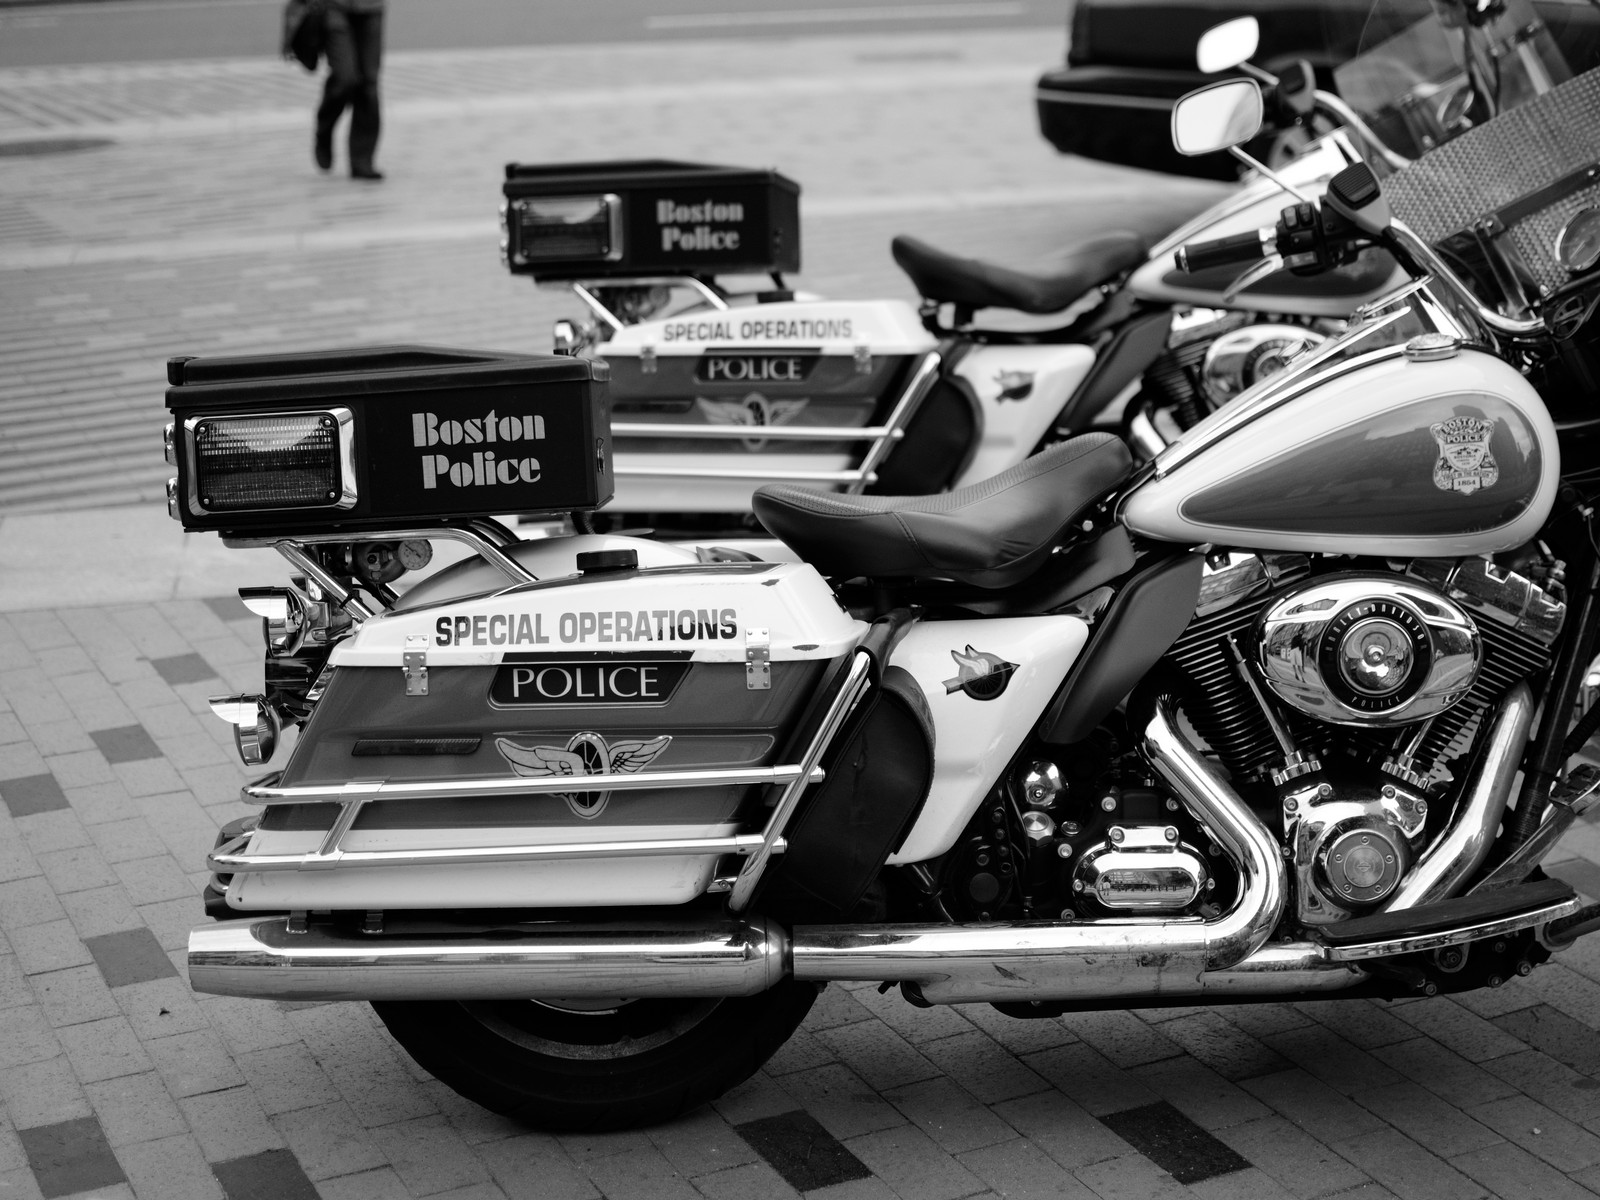 boston police bike, special operations